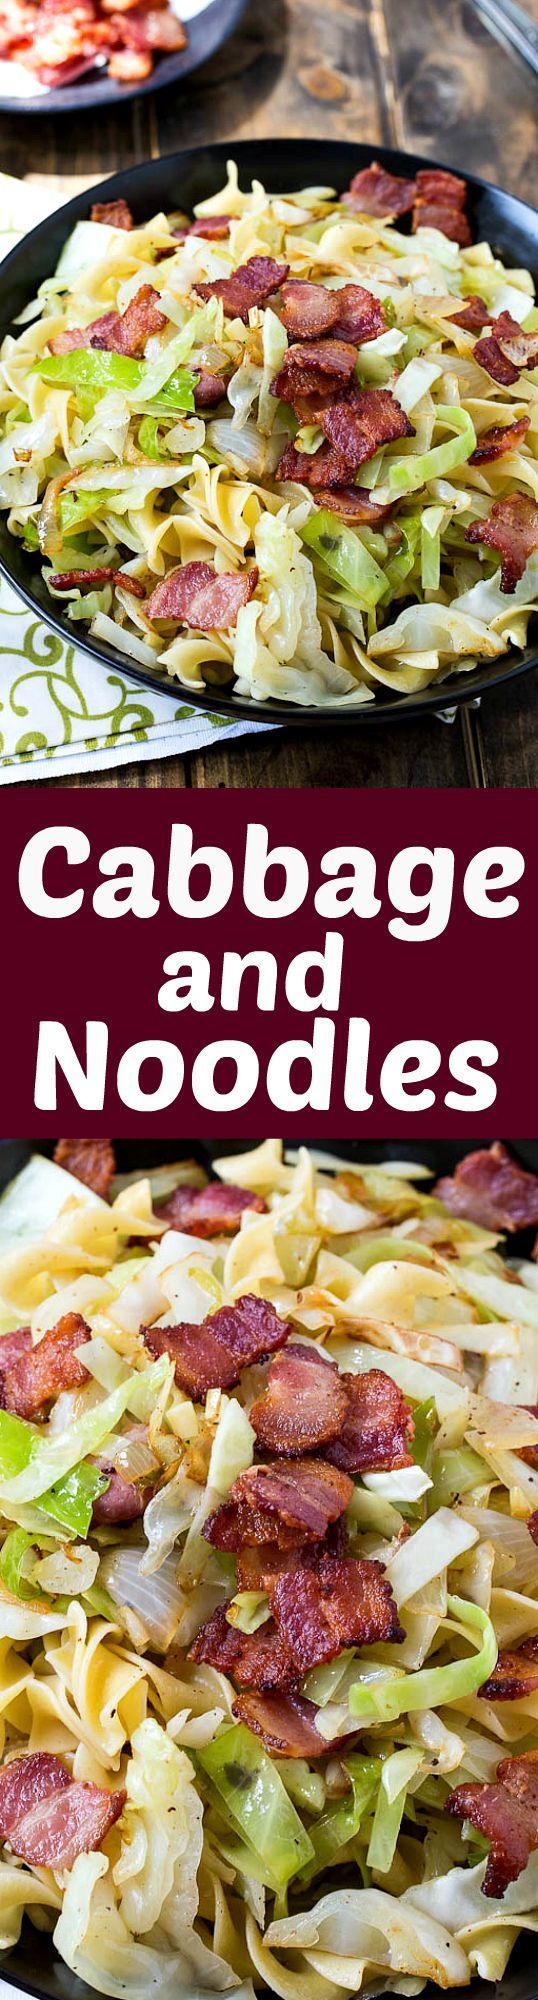 Cabbage and Noodles cooked in bacon. Simple and easy comfort food.